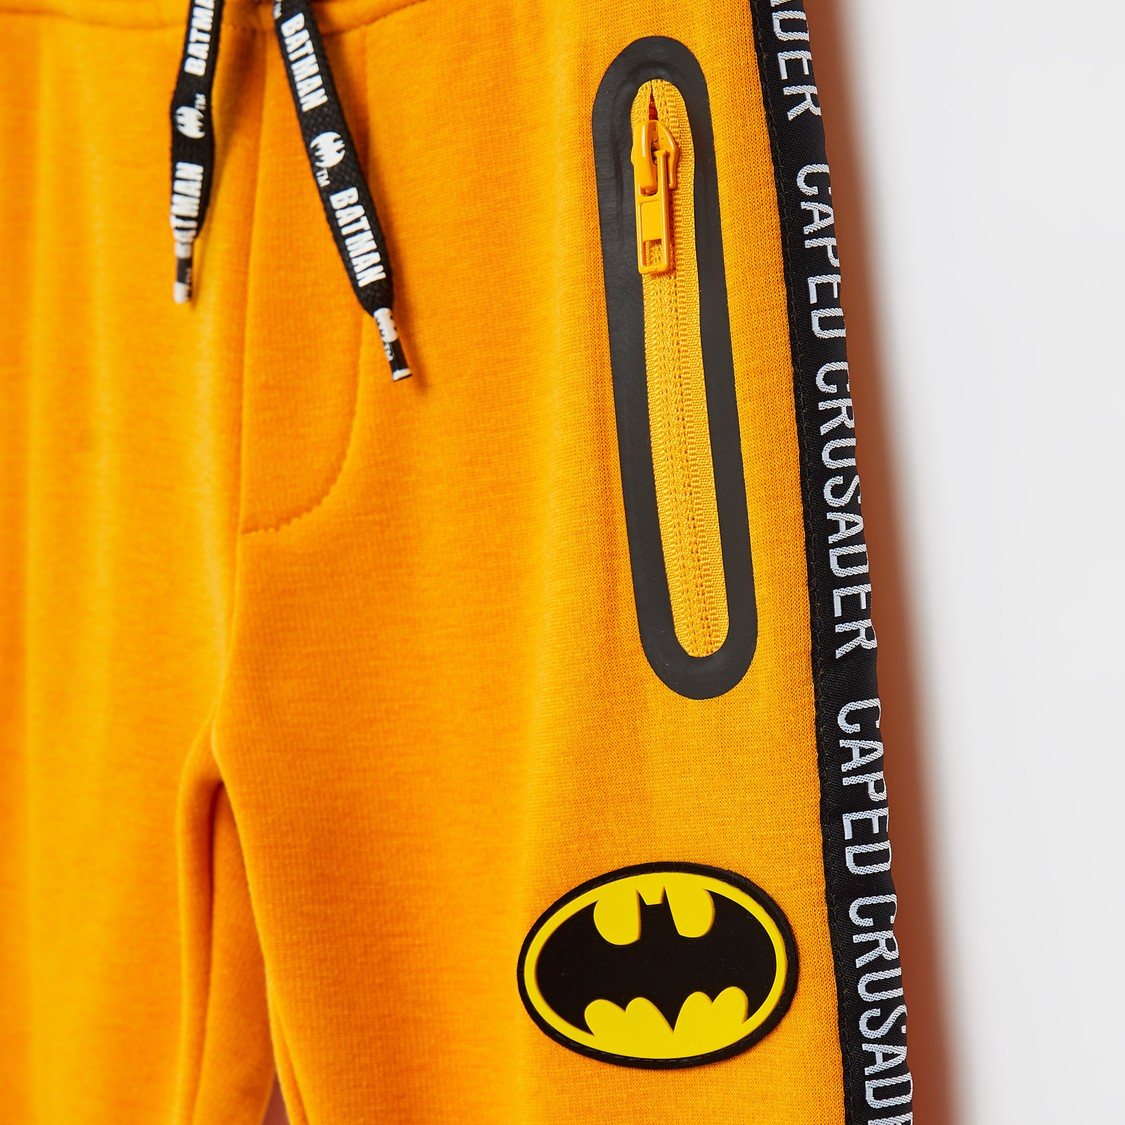 Full Length Batman Print Joggers with Drawstring Closure and Pockets